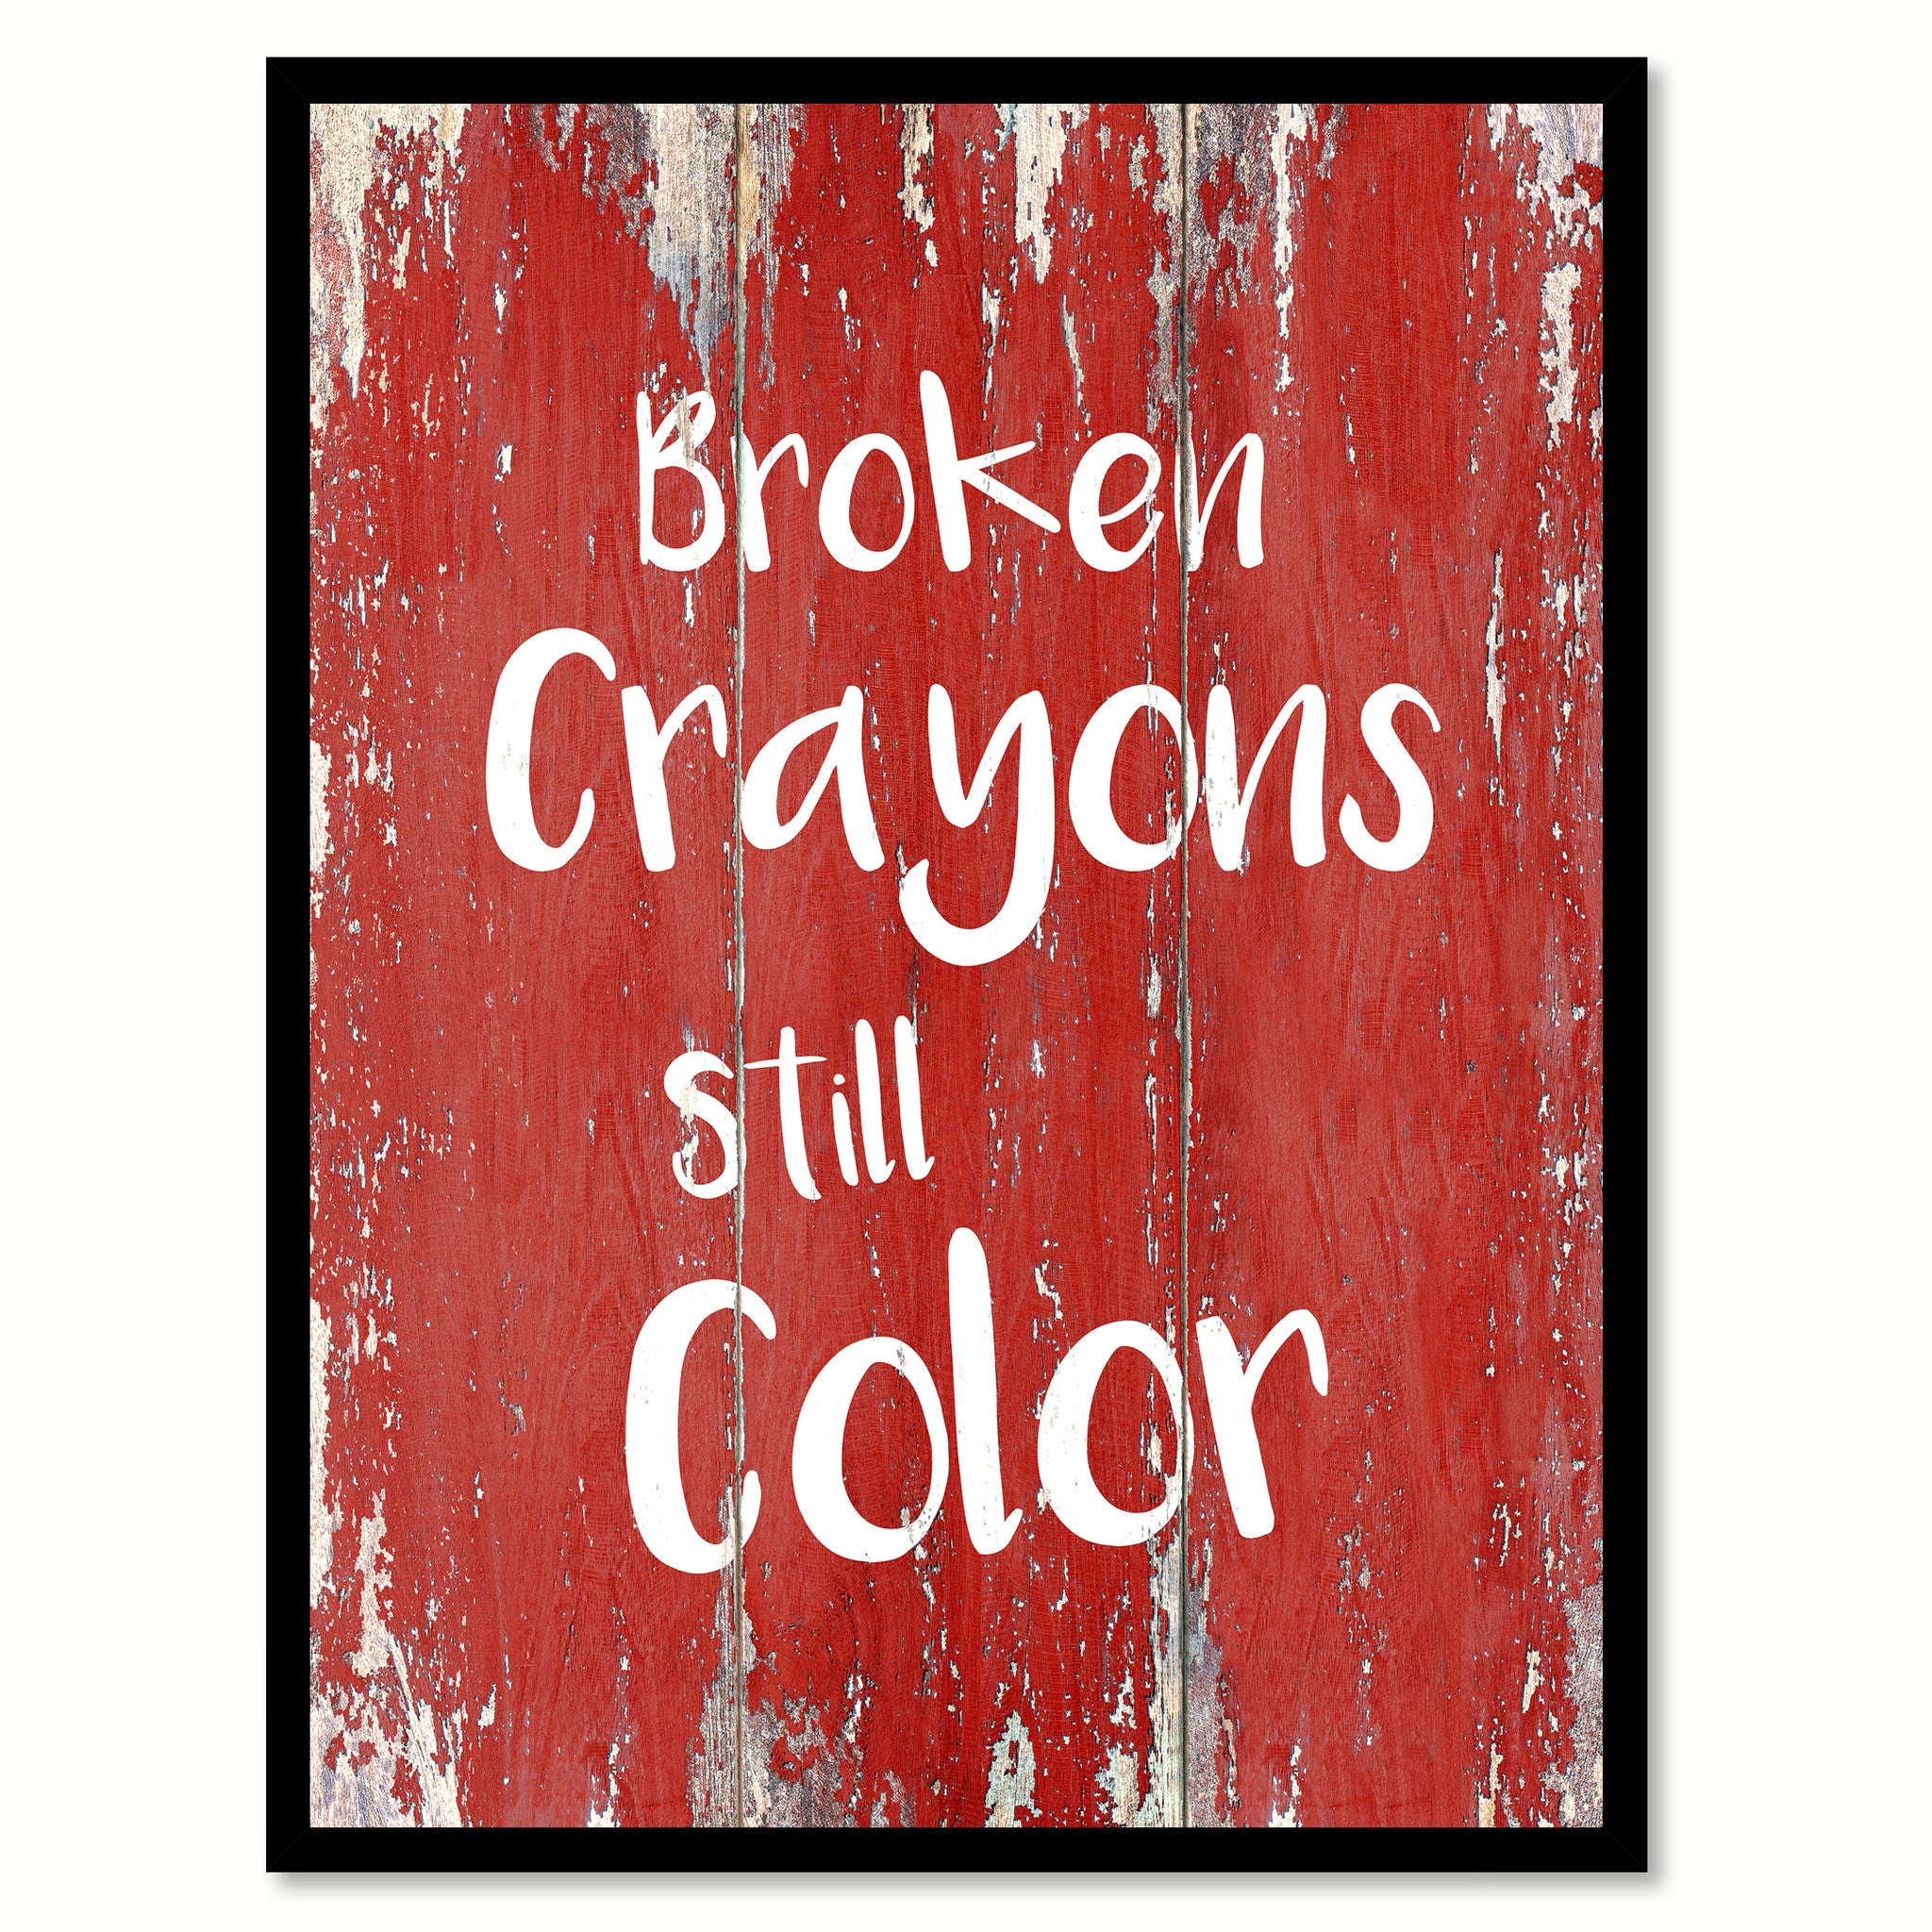 Broken Crayons Still Color Inspirational Quote Saying Canvas Print